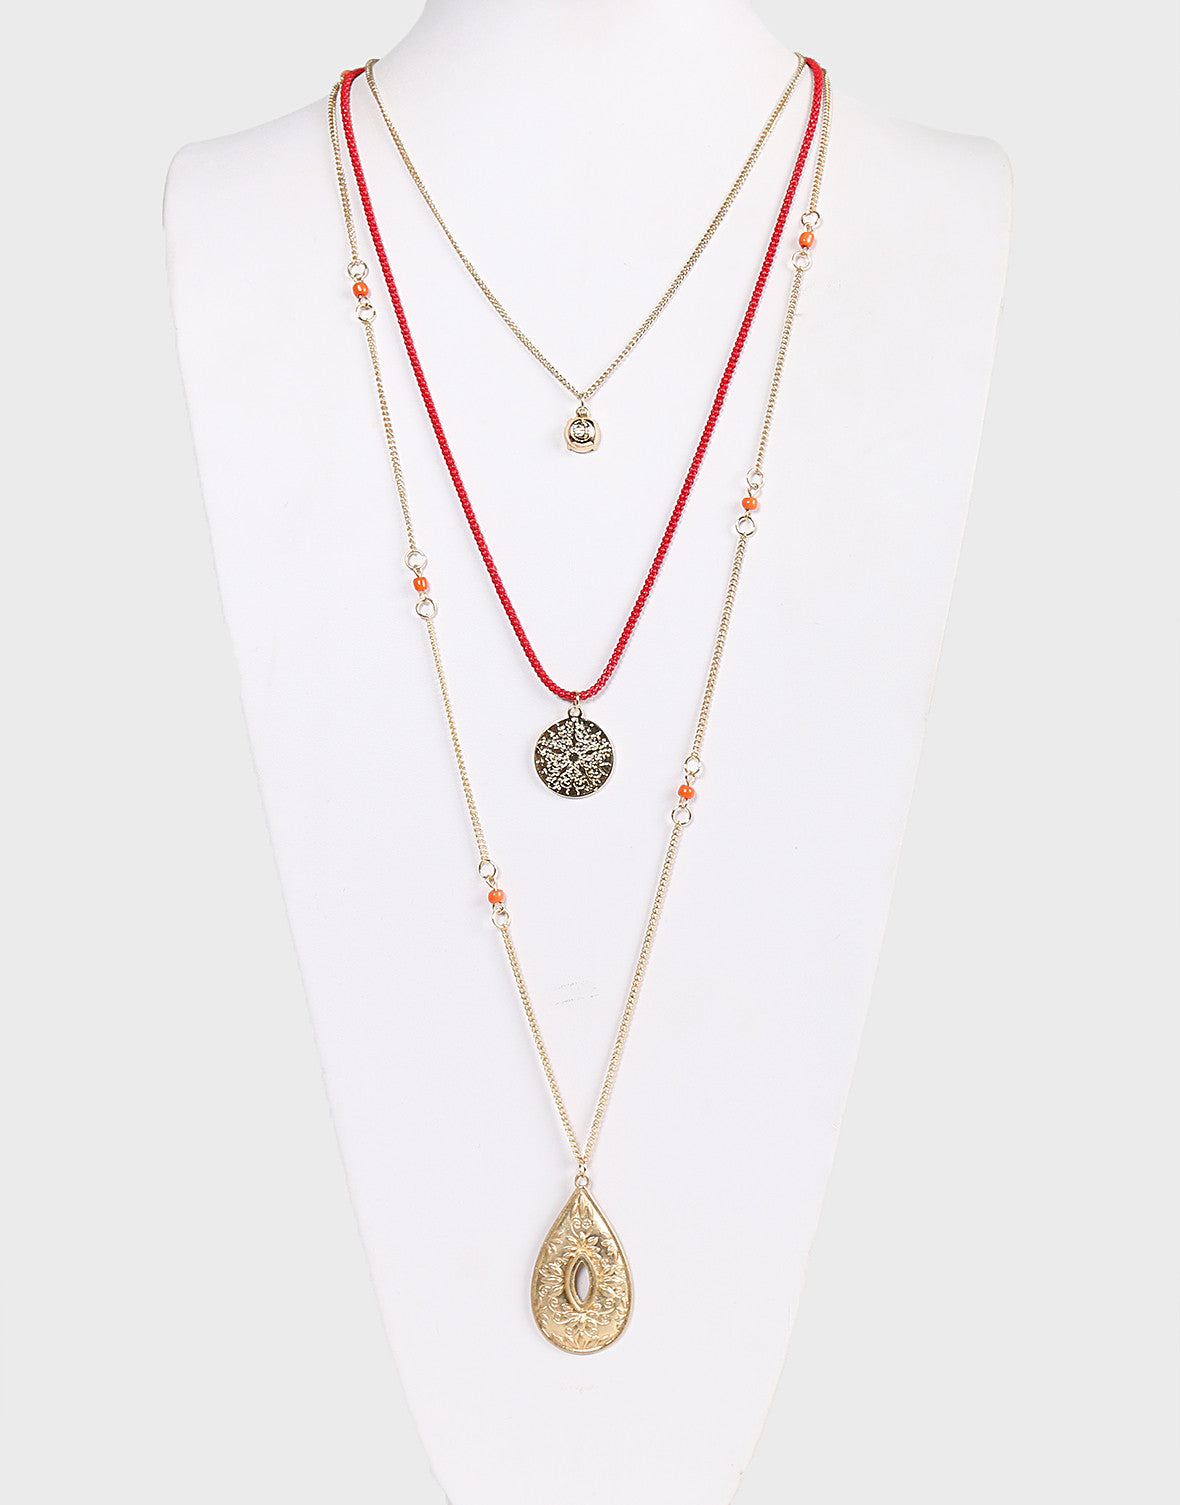 Boho Layered Antique Necklace